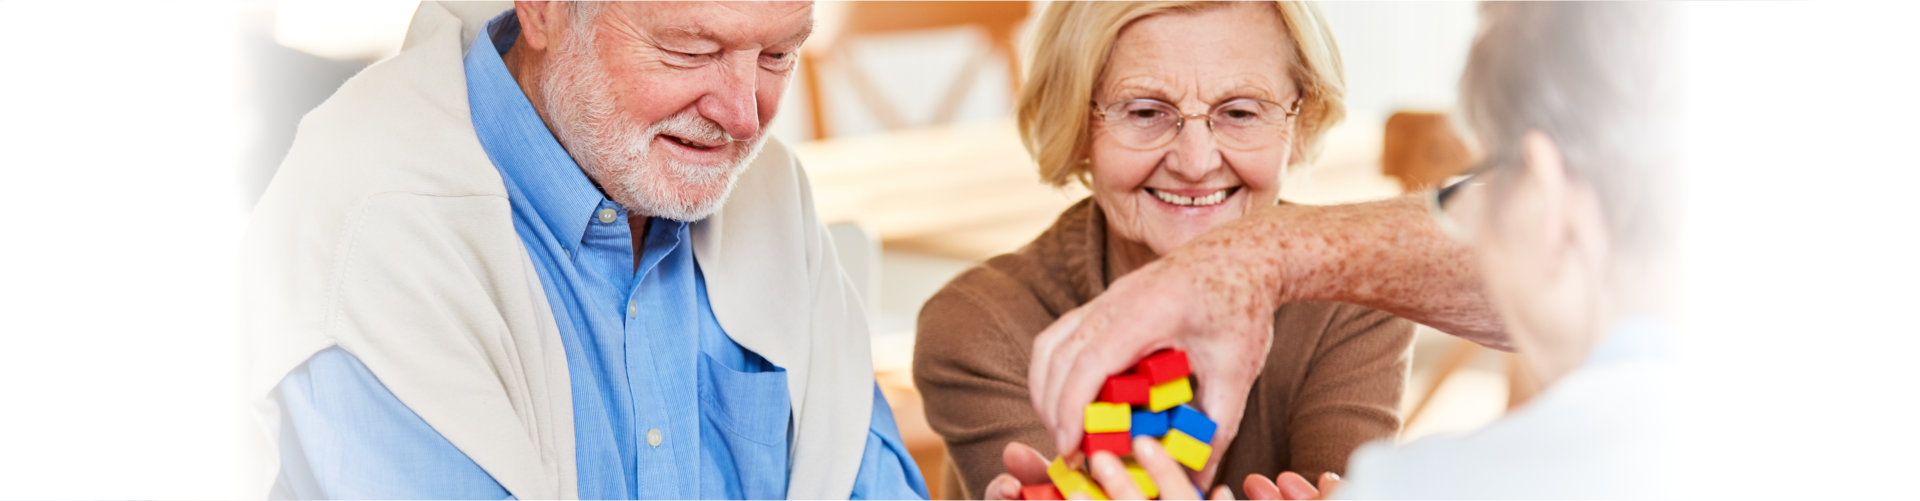 group of elderly stacking the building blocks